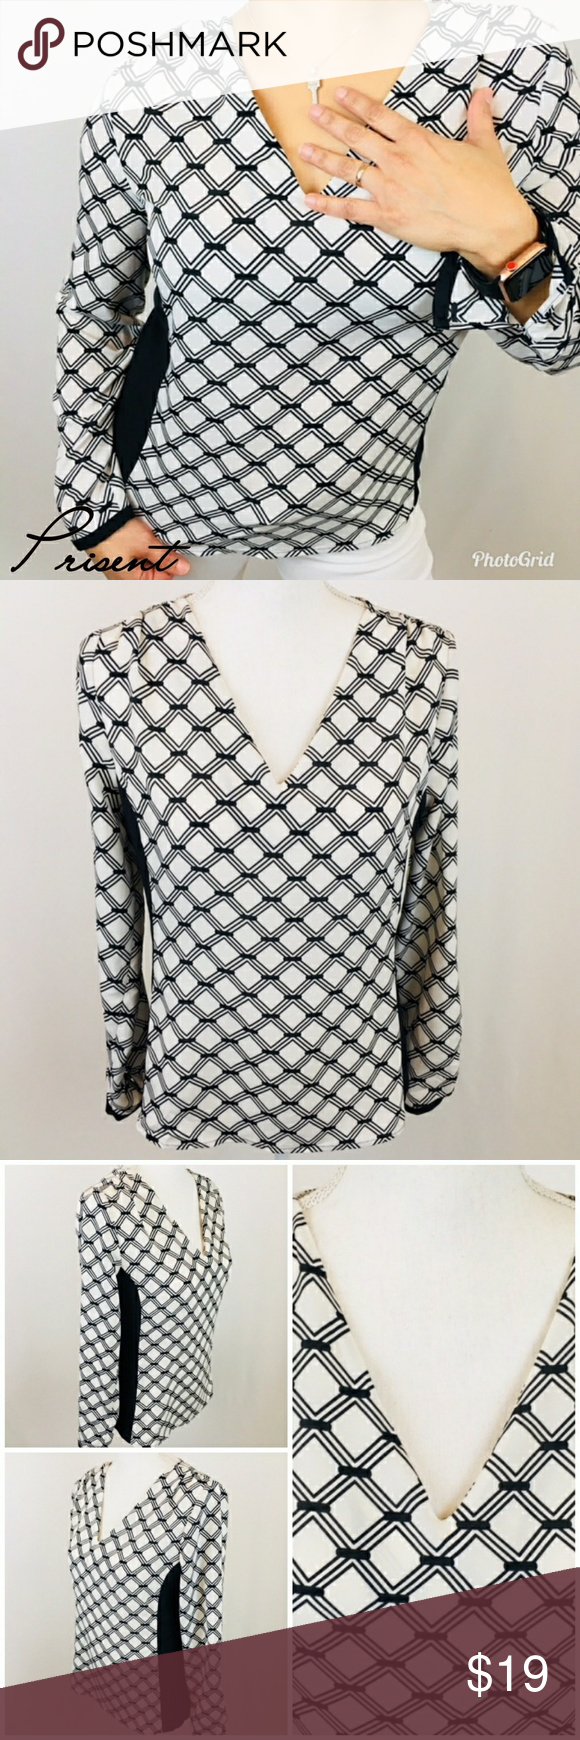 Worthington top women's long sleeve sz S white Worthington top women's long sleeve size S white and black color.  Lightweight fabric.  Approximate flat extended measures: Armpit to armpit 19